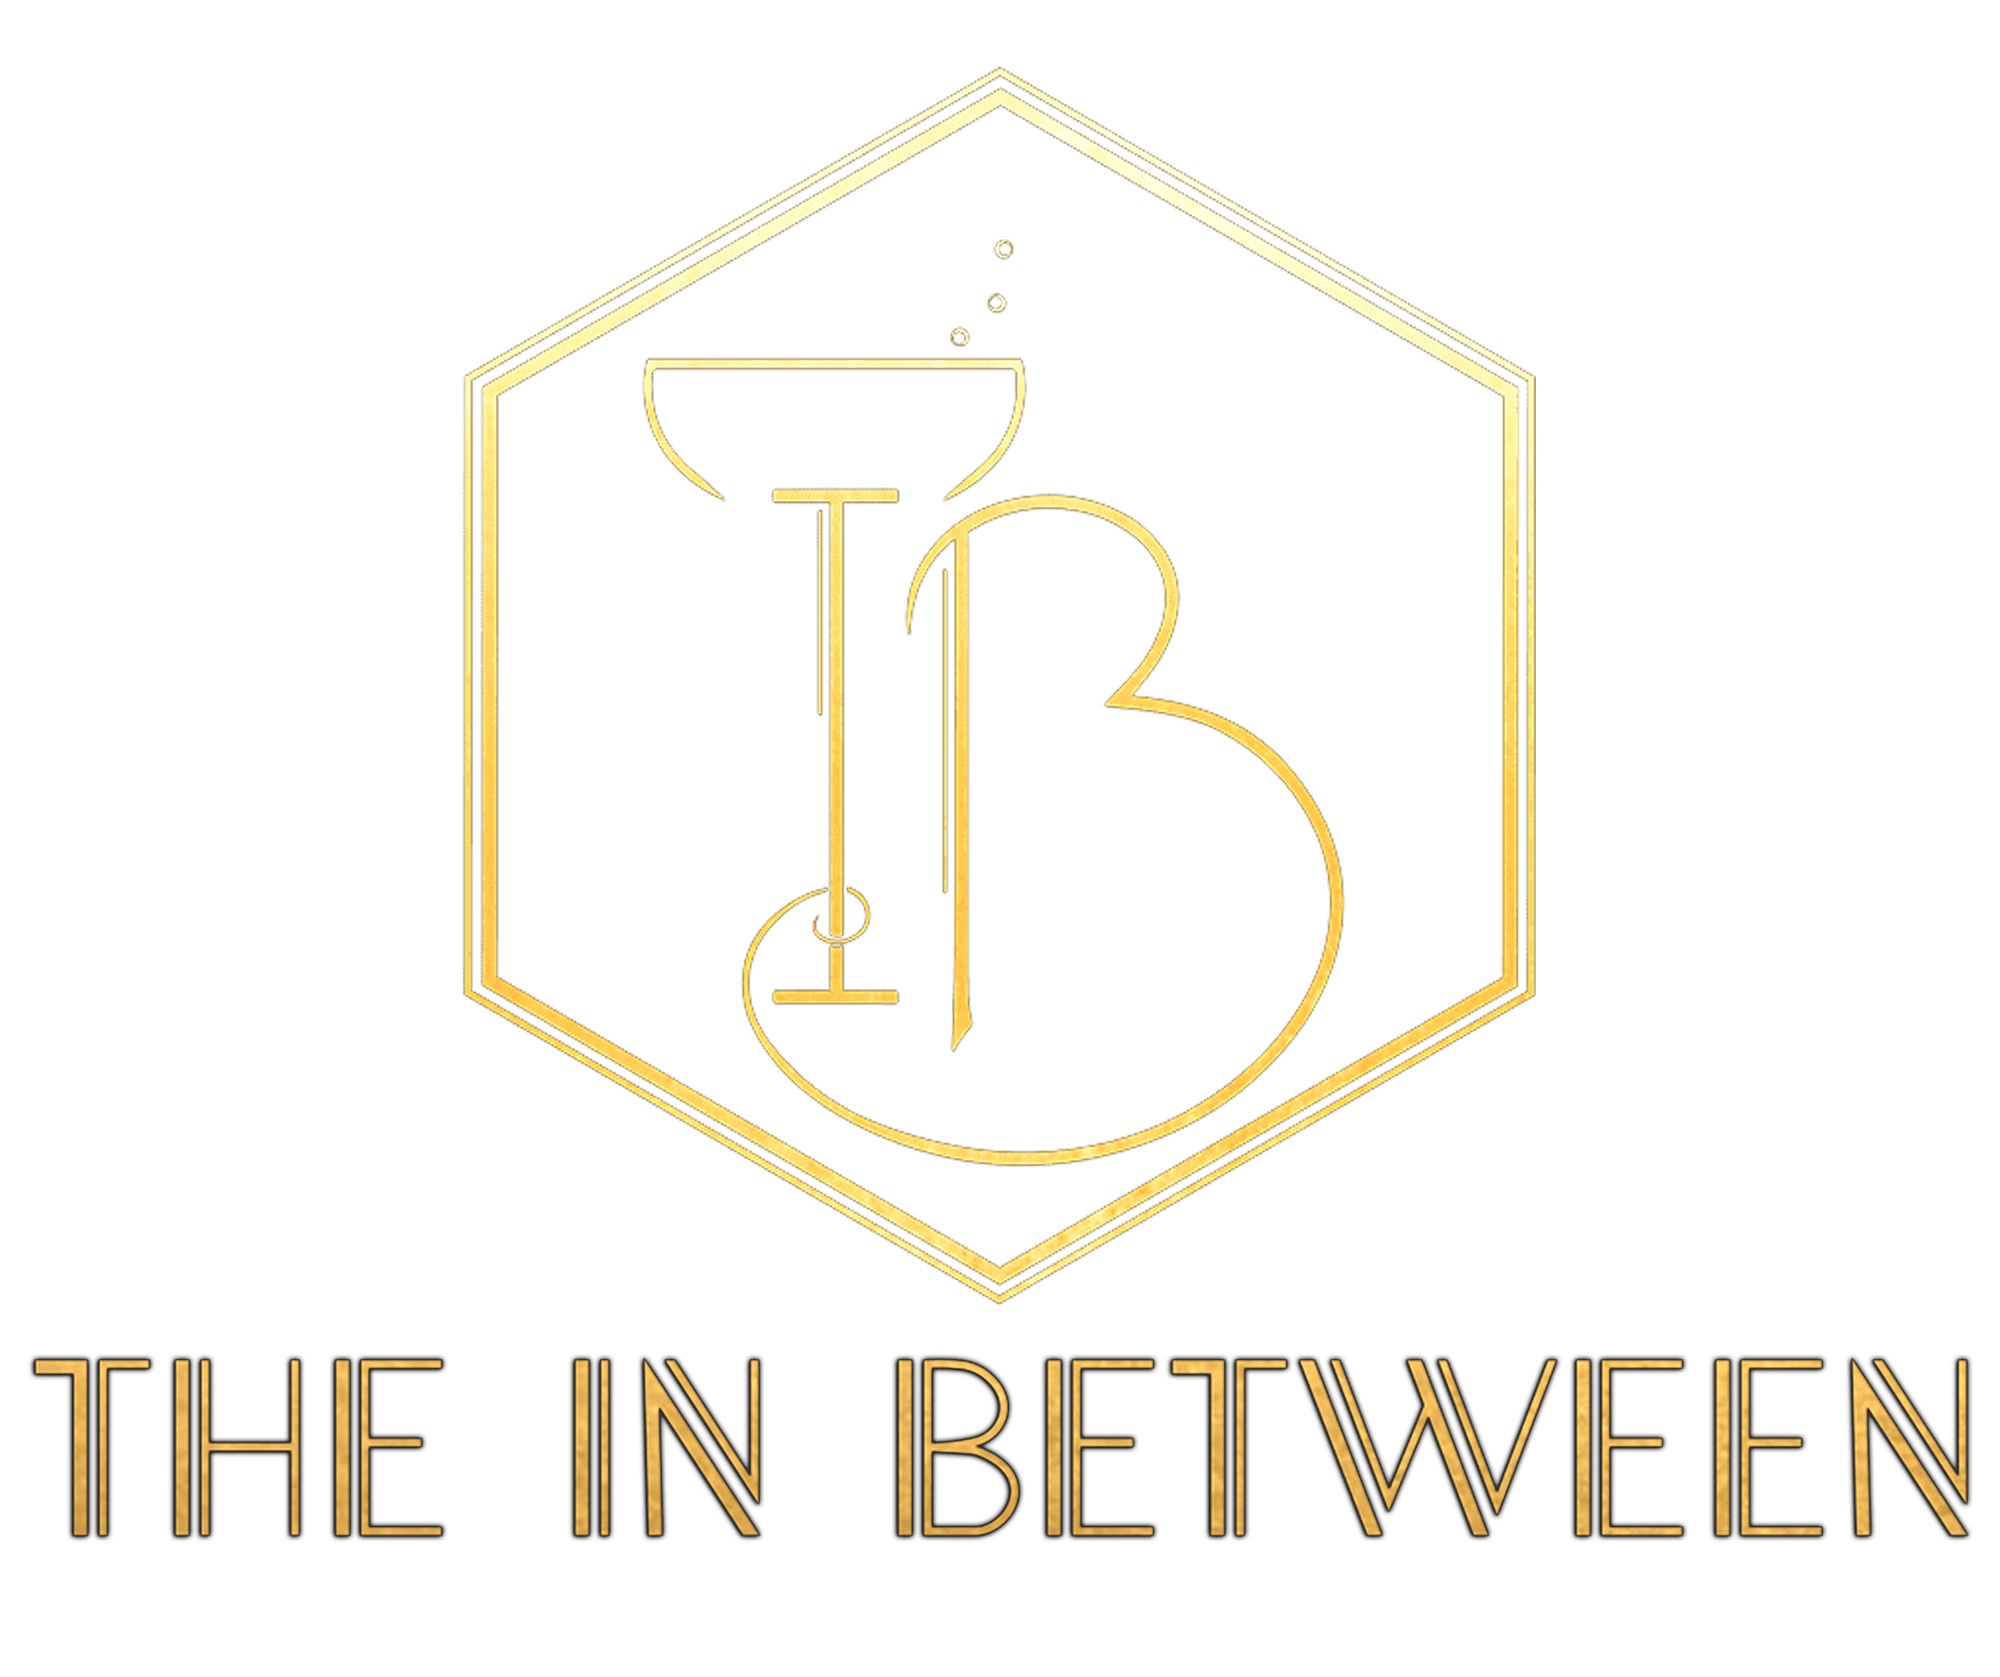 The In Between